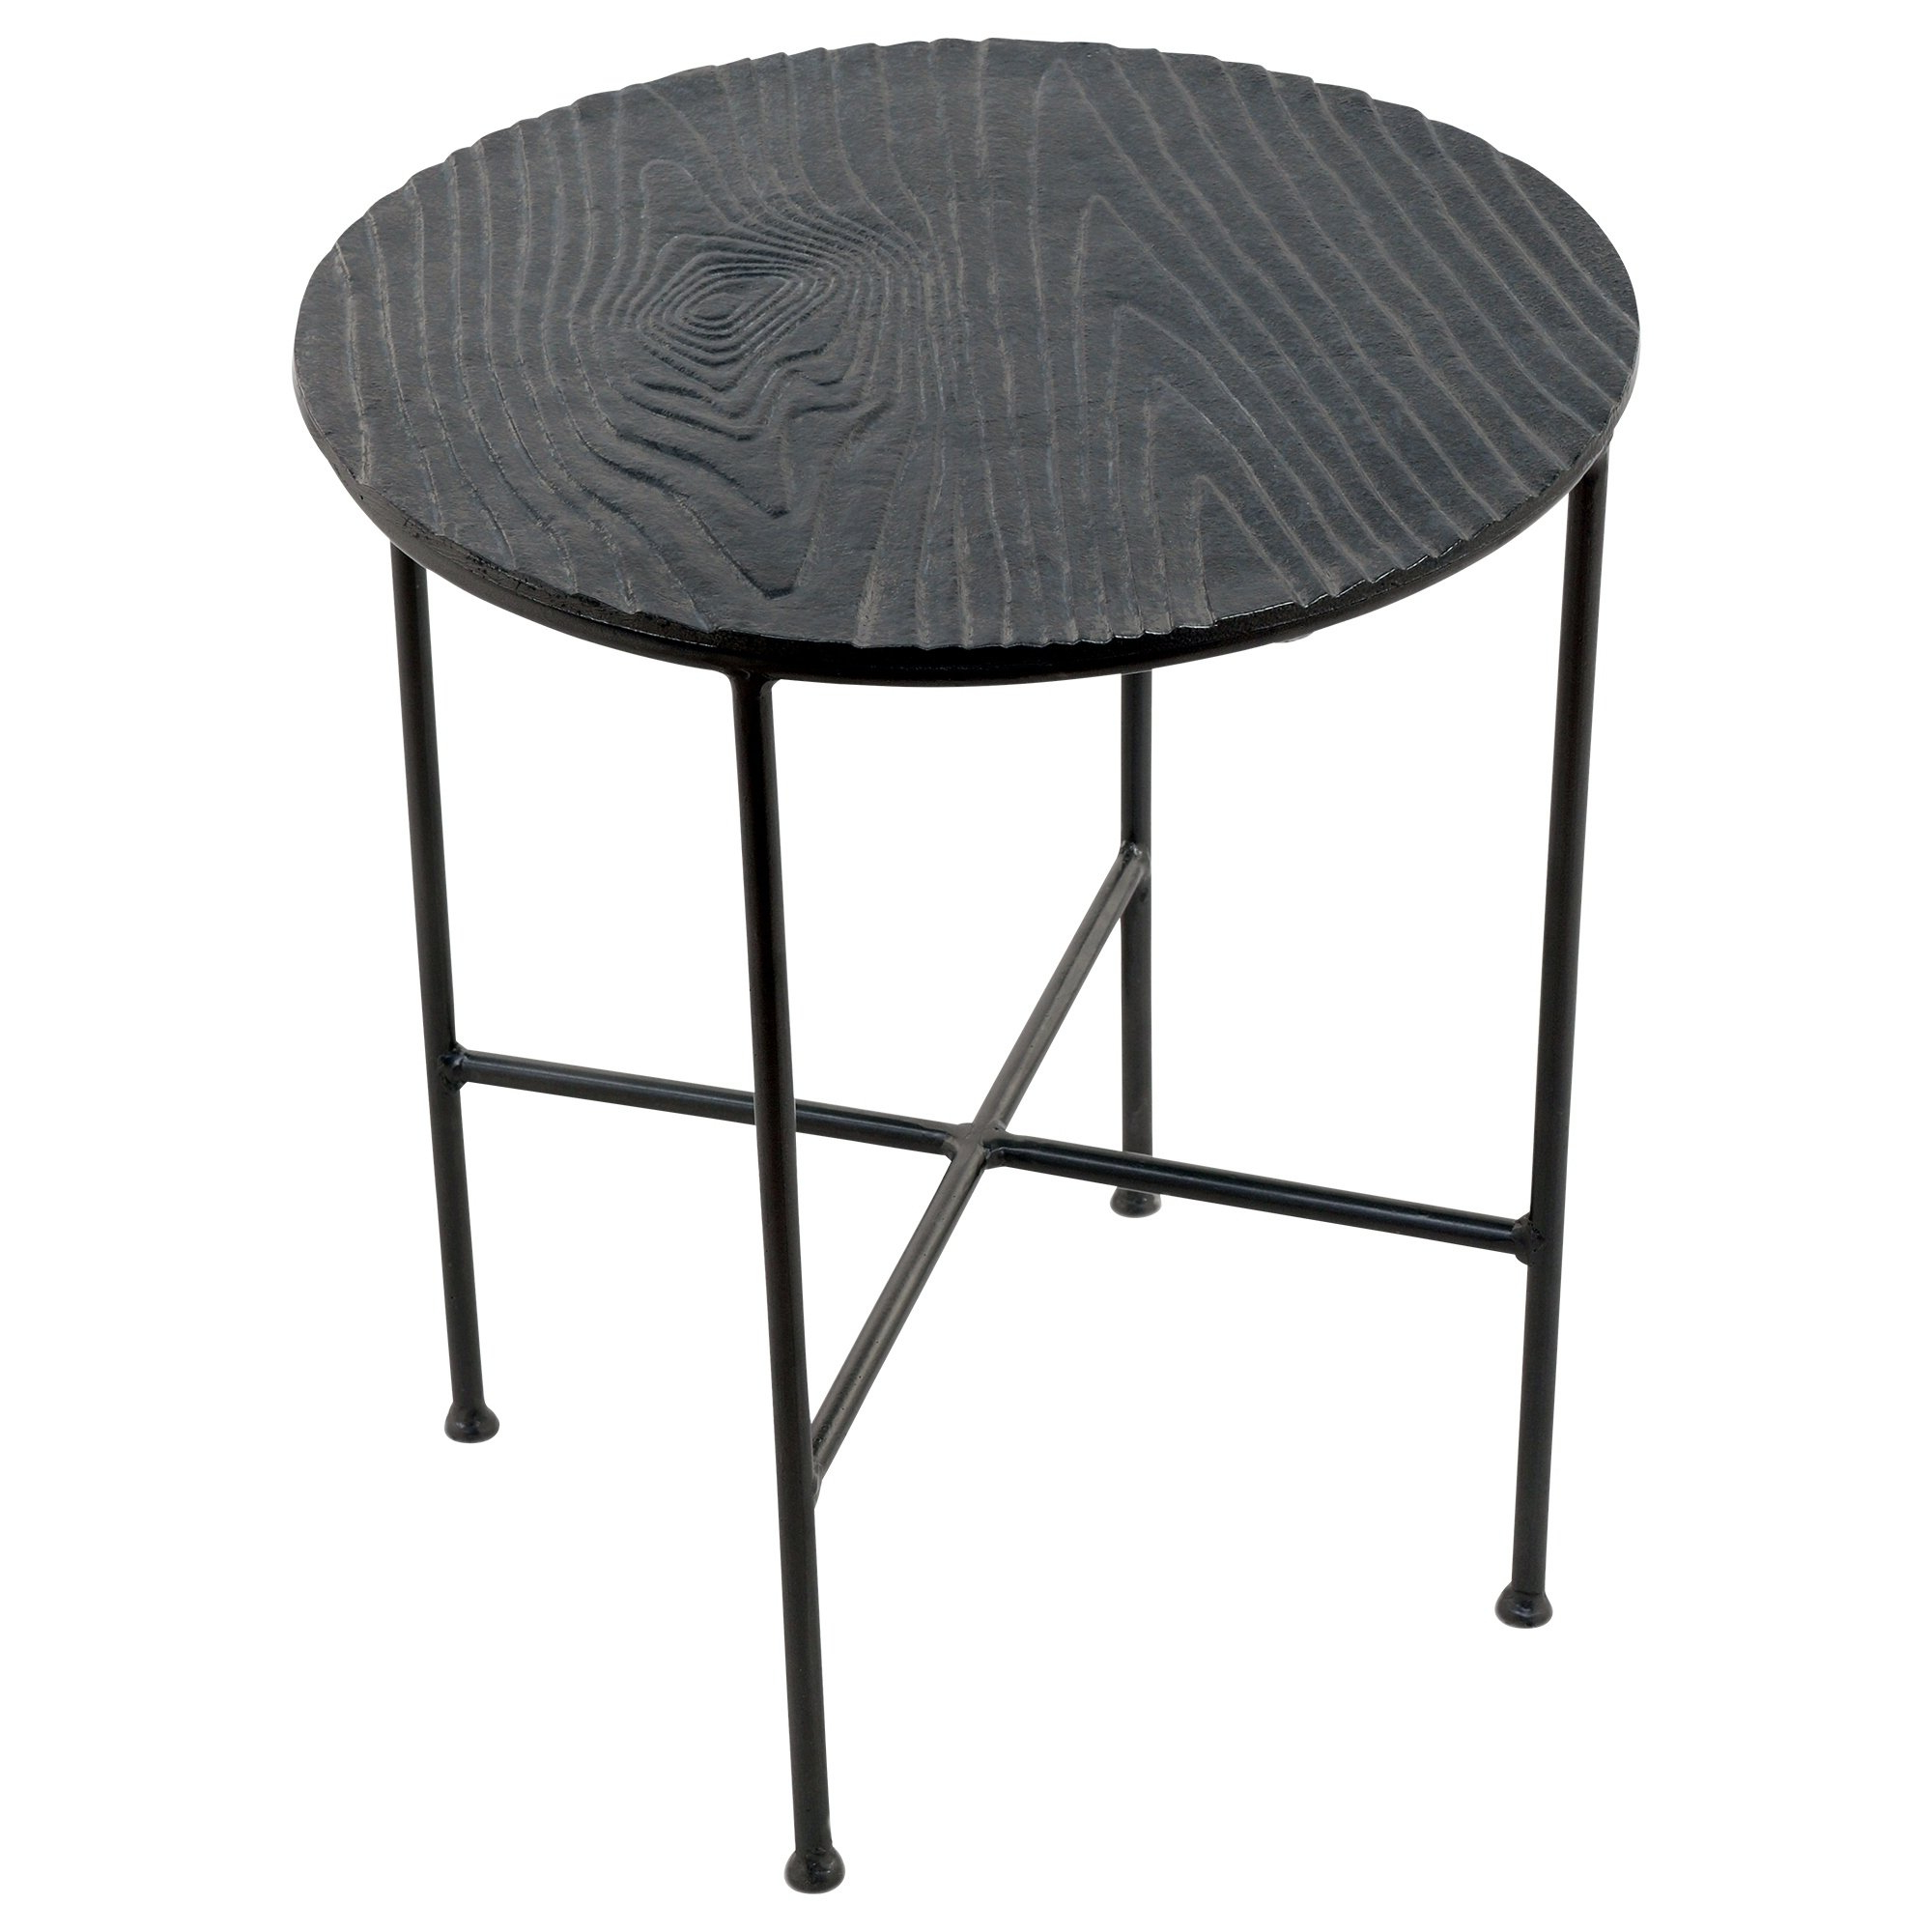 Most Recent Bale Rustic Grey Round Cocktail Tables With Storage Regarding Shop Renwil Bale Grey Aluminum Round Accent Table – Free Shipping (View 10 of 20)